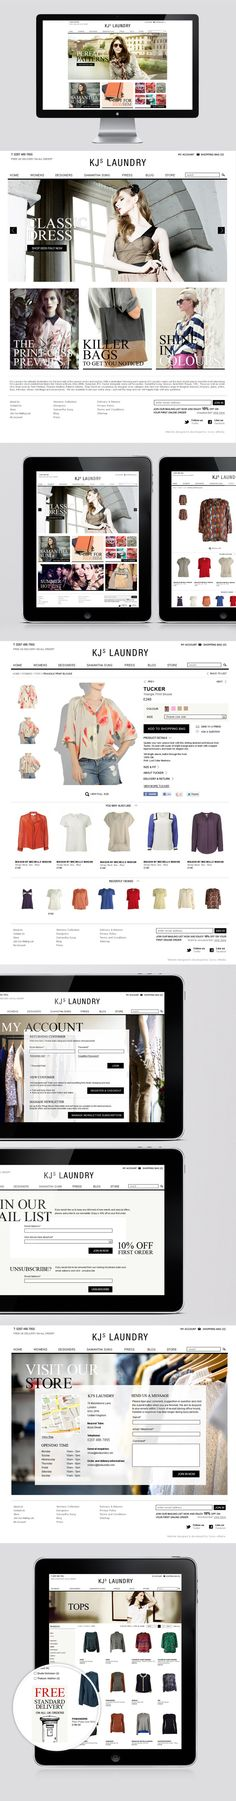 Feather & Stitch website design Ecommerce website design for London fashion boutique KJs Laundry.